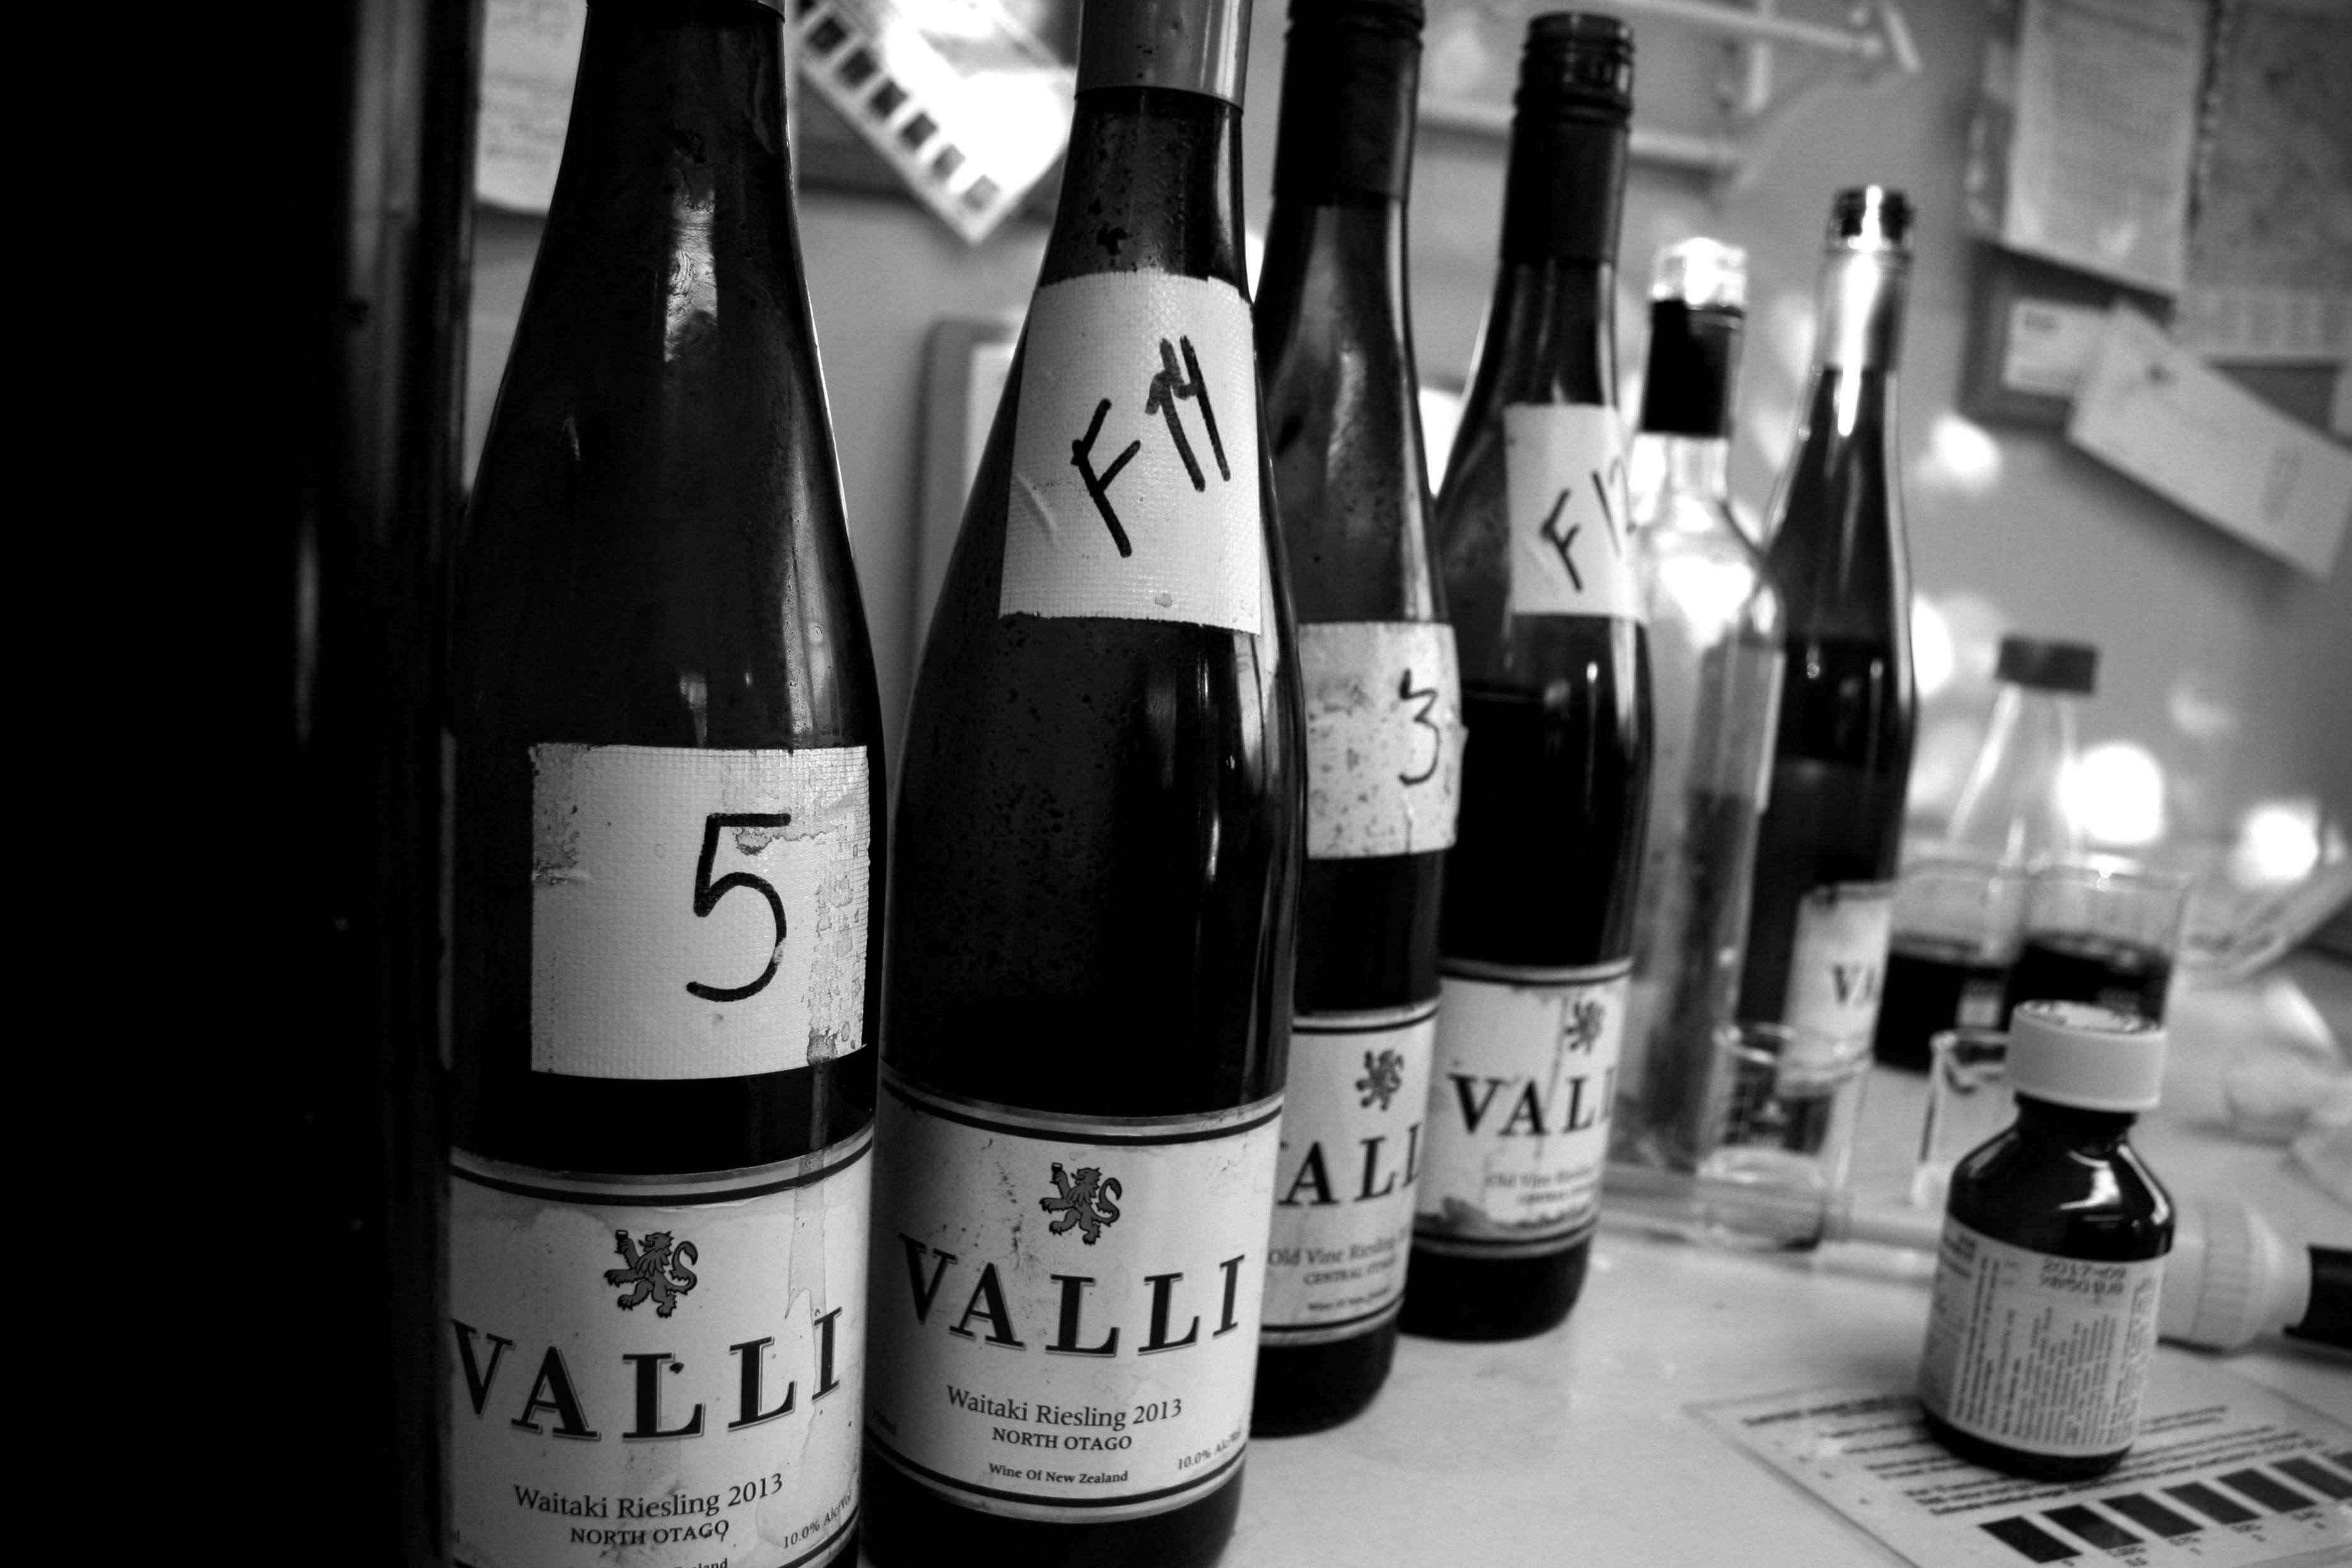 Valli Wine lab